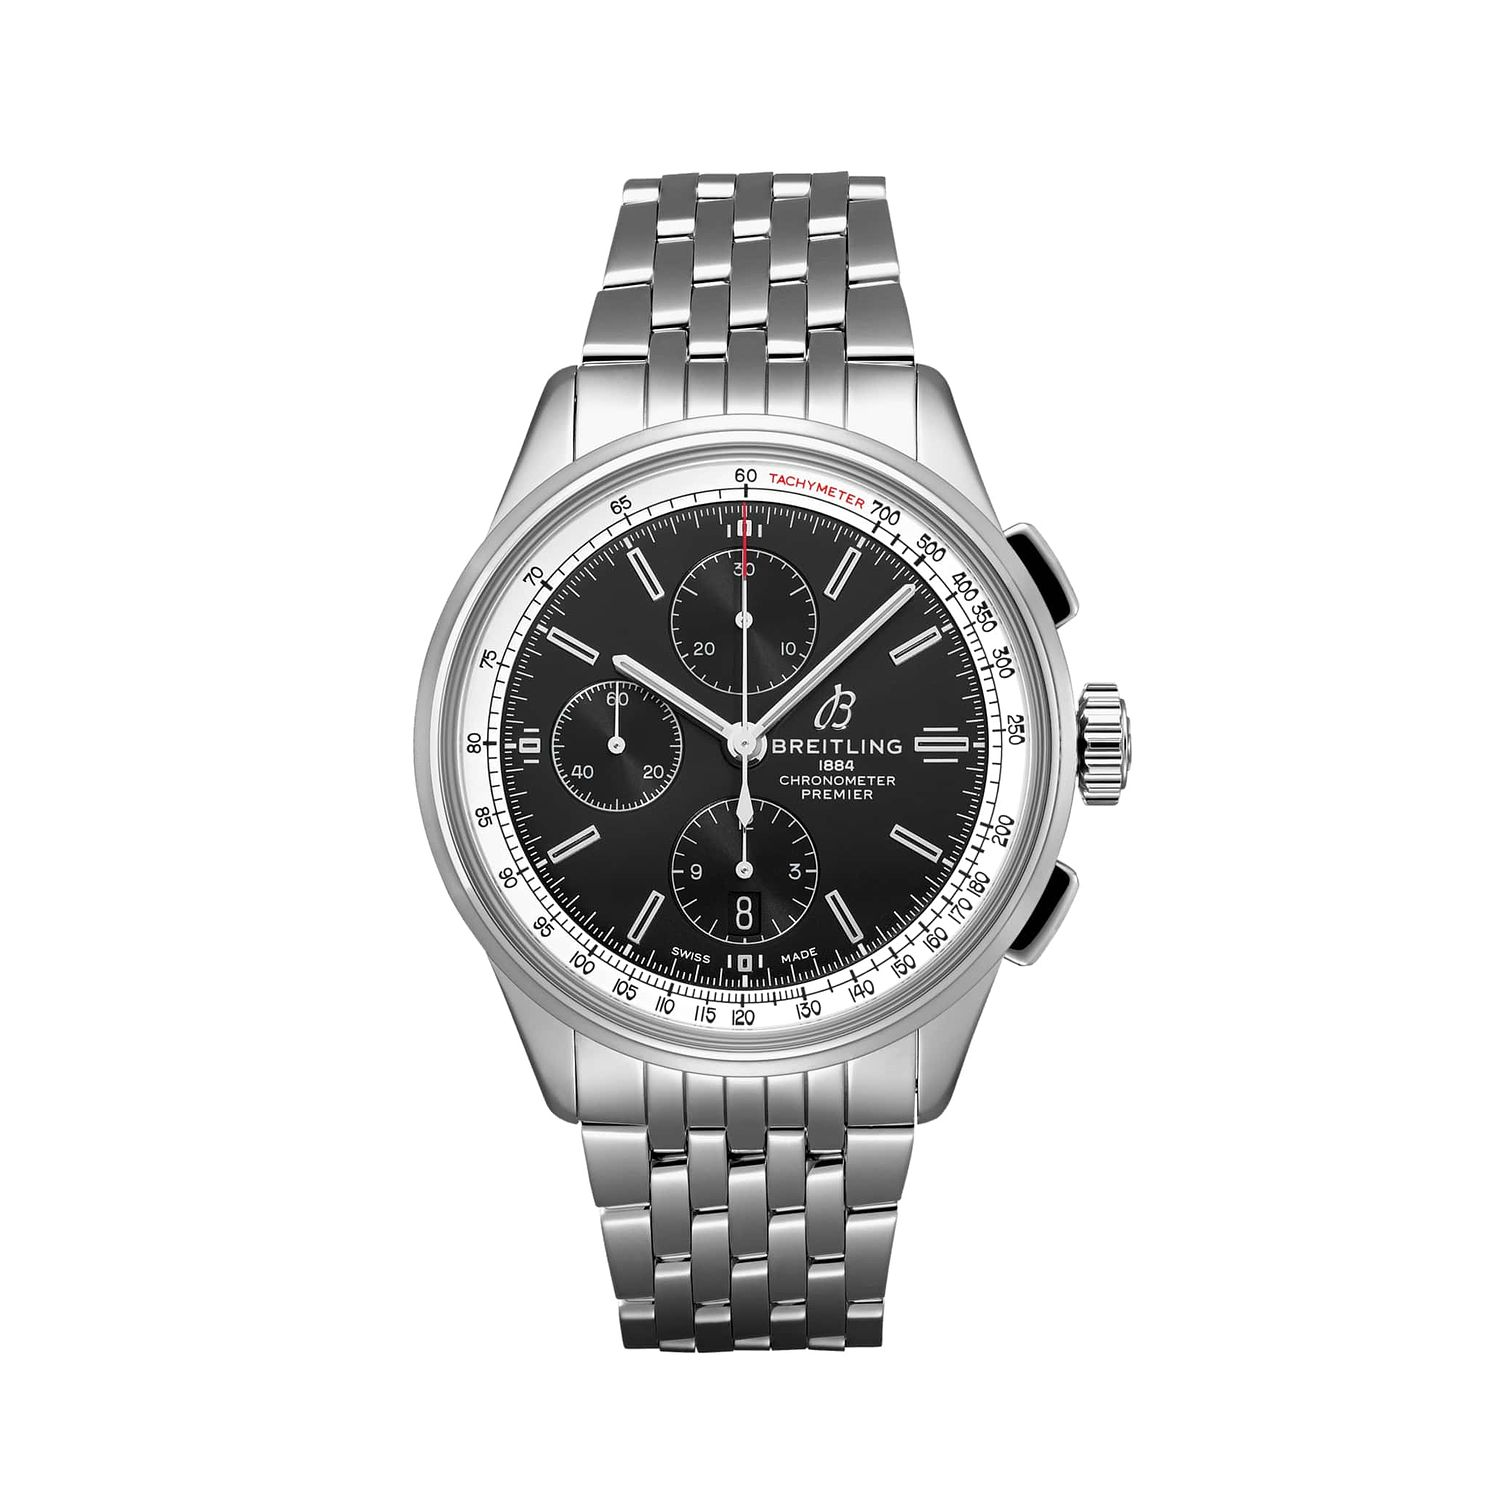 Breitling Premier Chronograph Stainless Steel Bracelet Watch - Product number 2923432